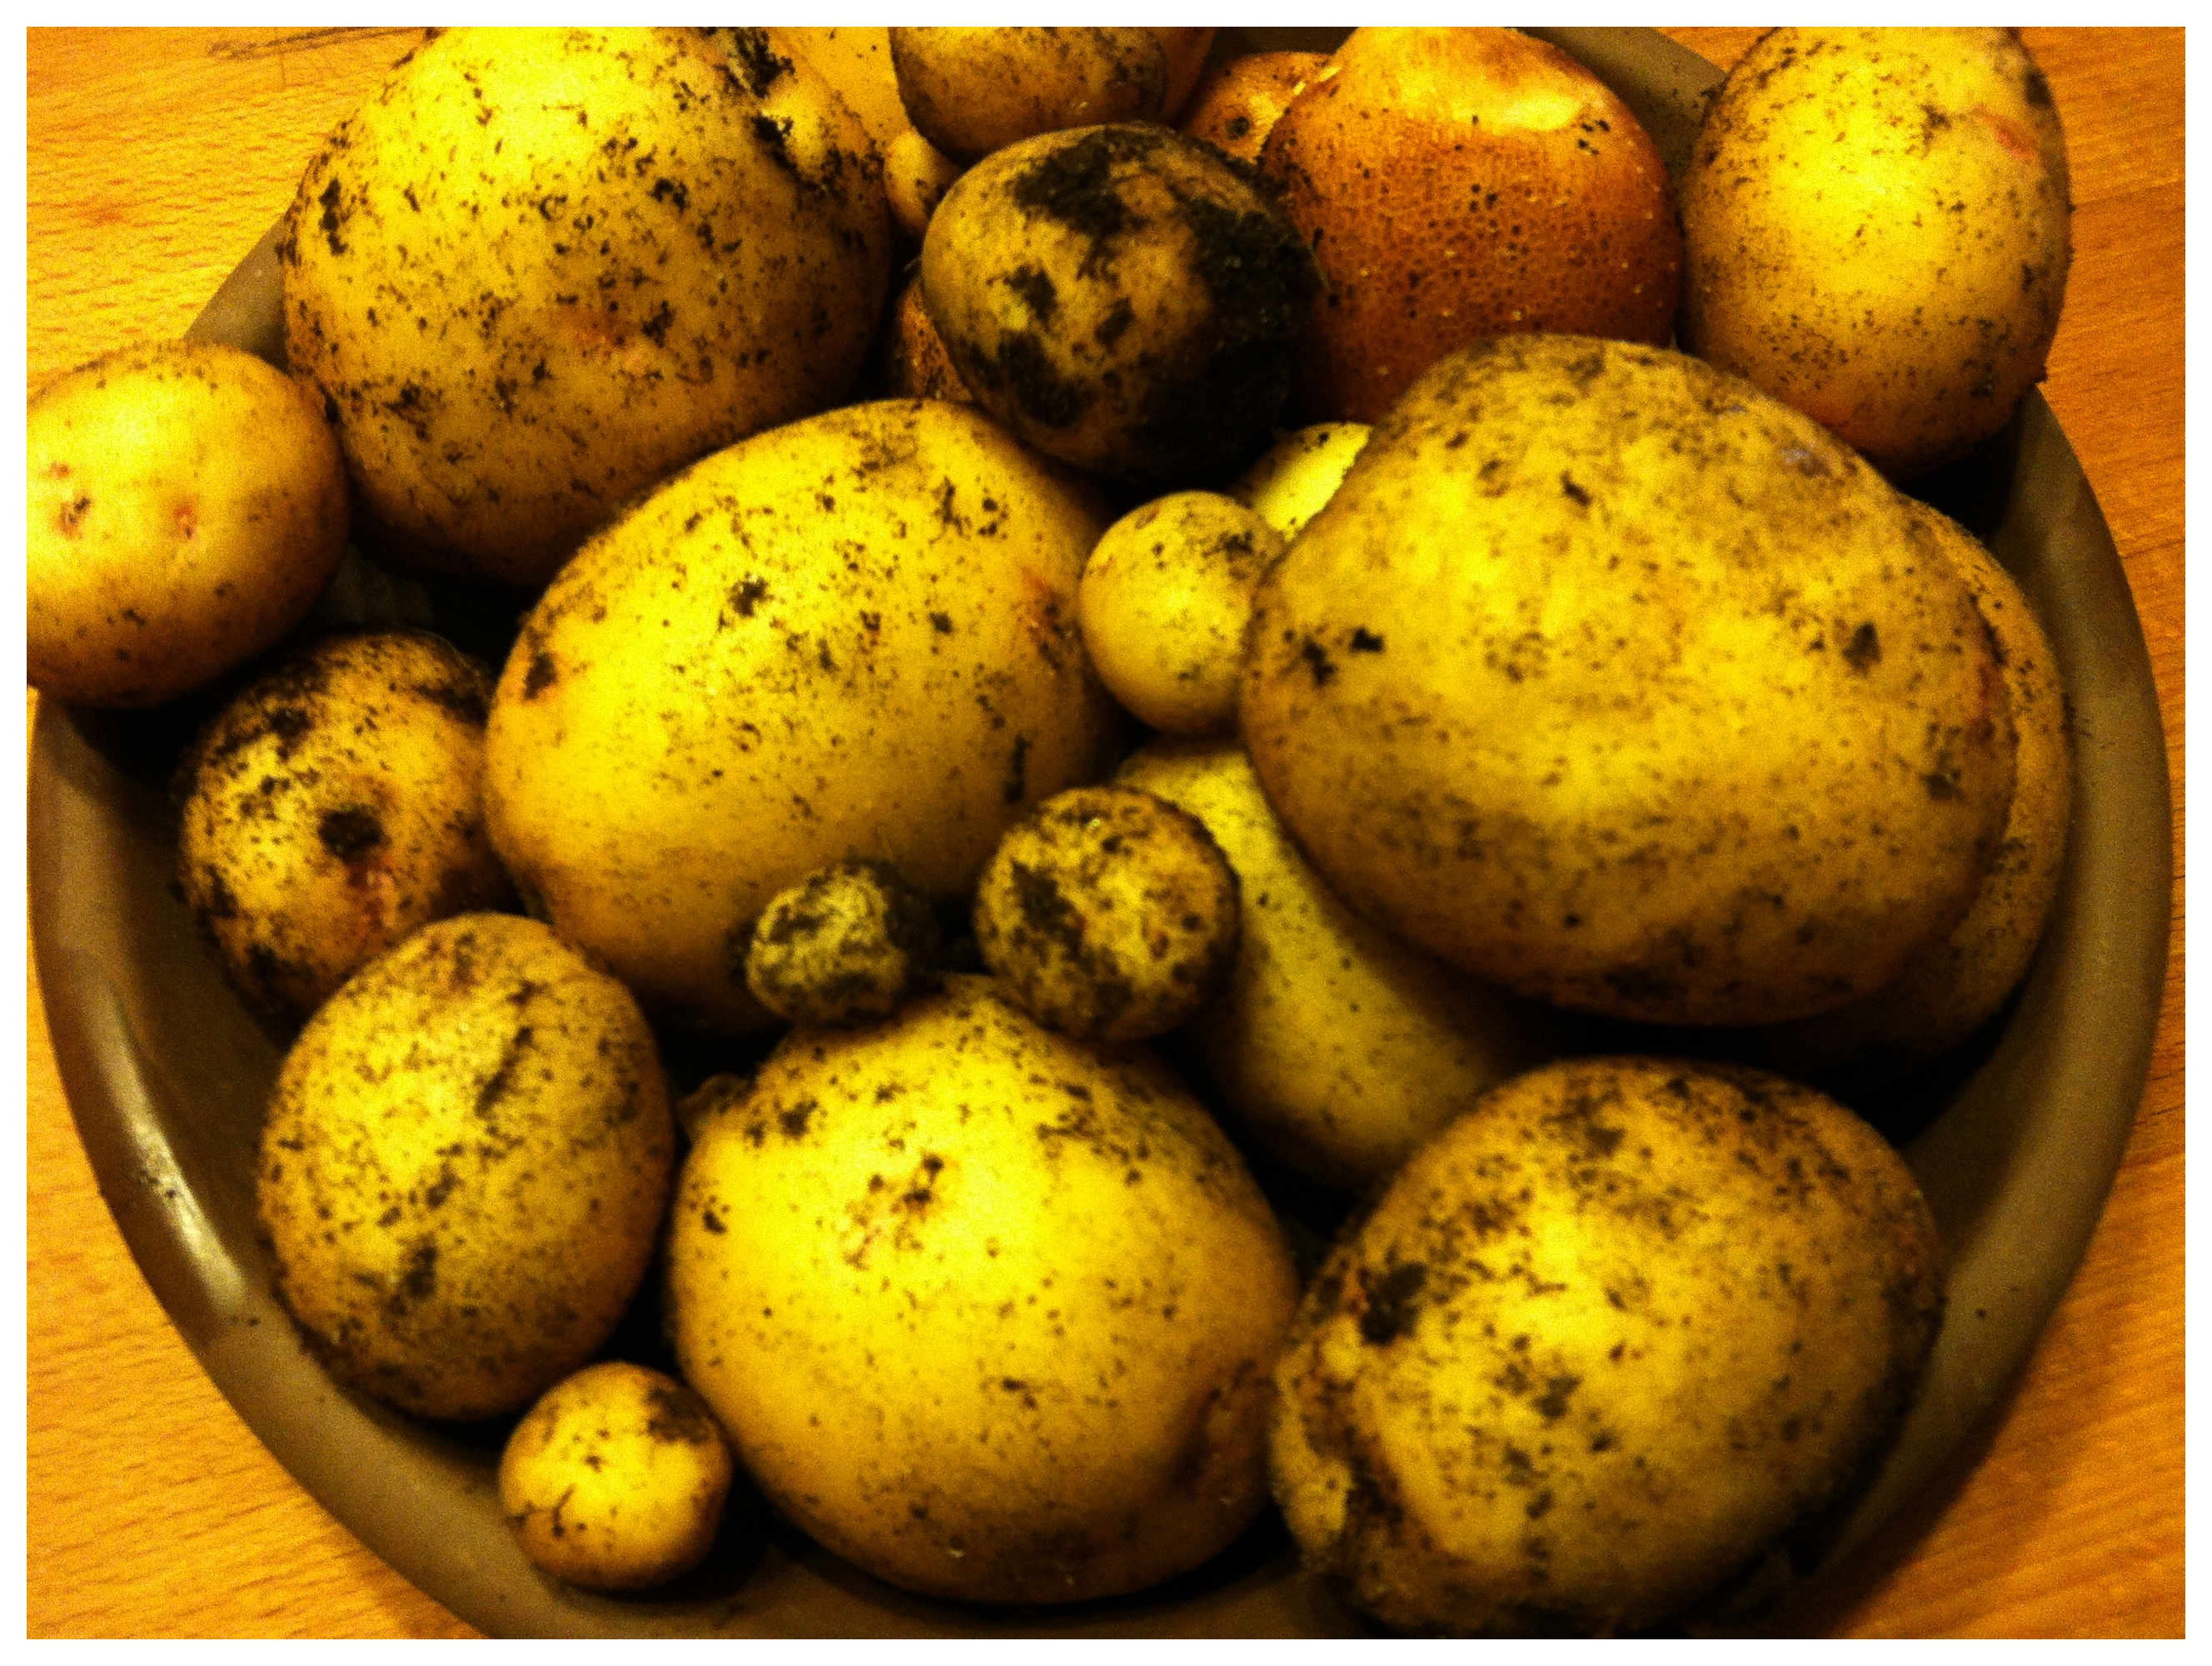 Garden Fresh Potatoes – chefkurtvonkahle